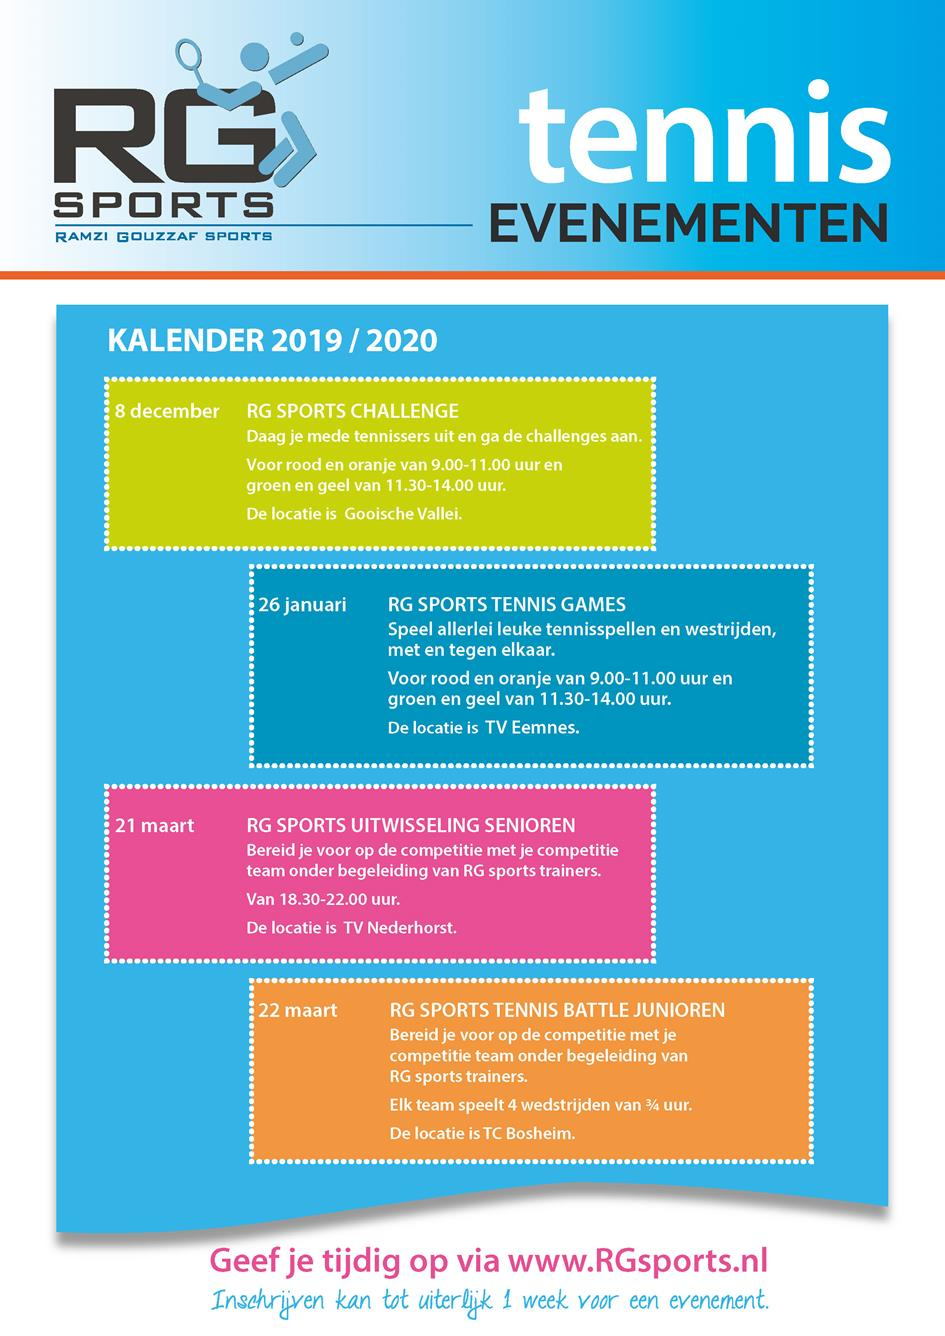 RG sports evenementenkalender 2019-2020.jpg